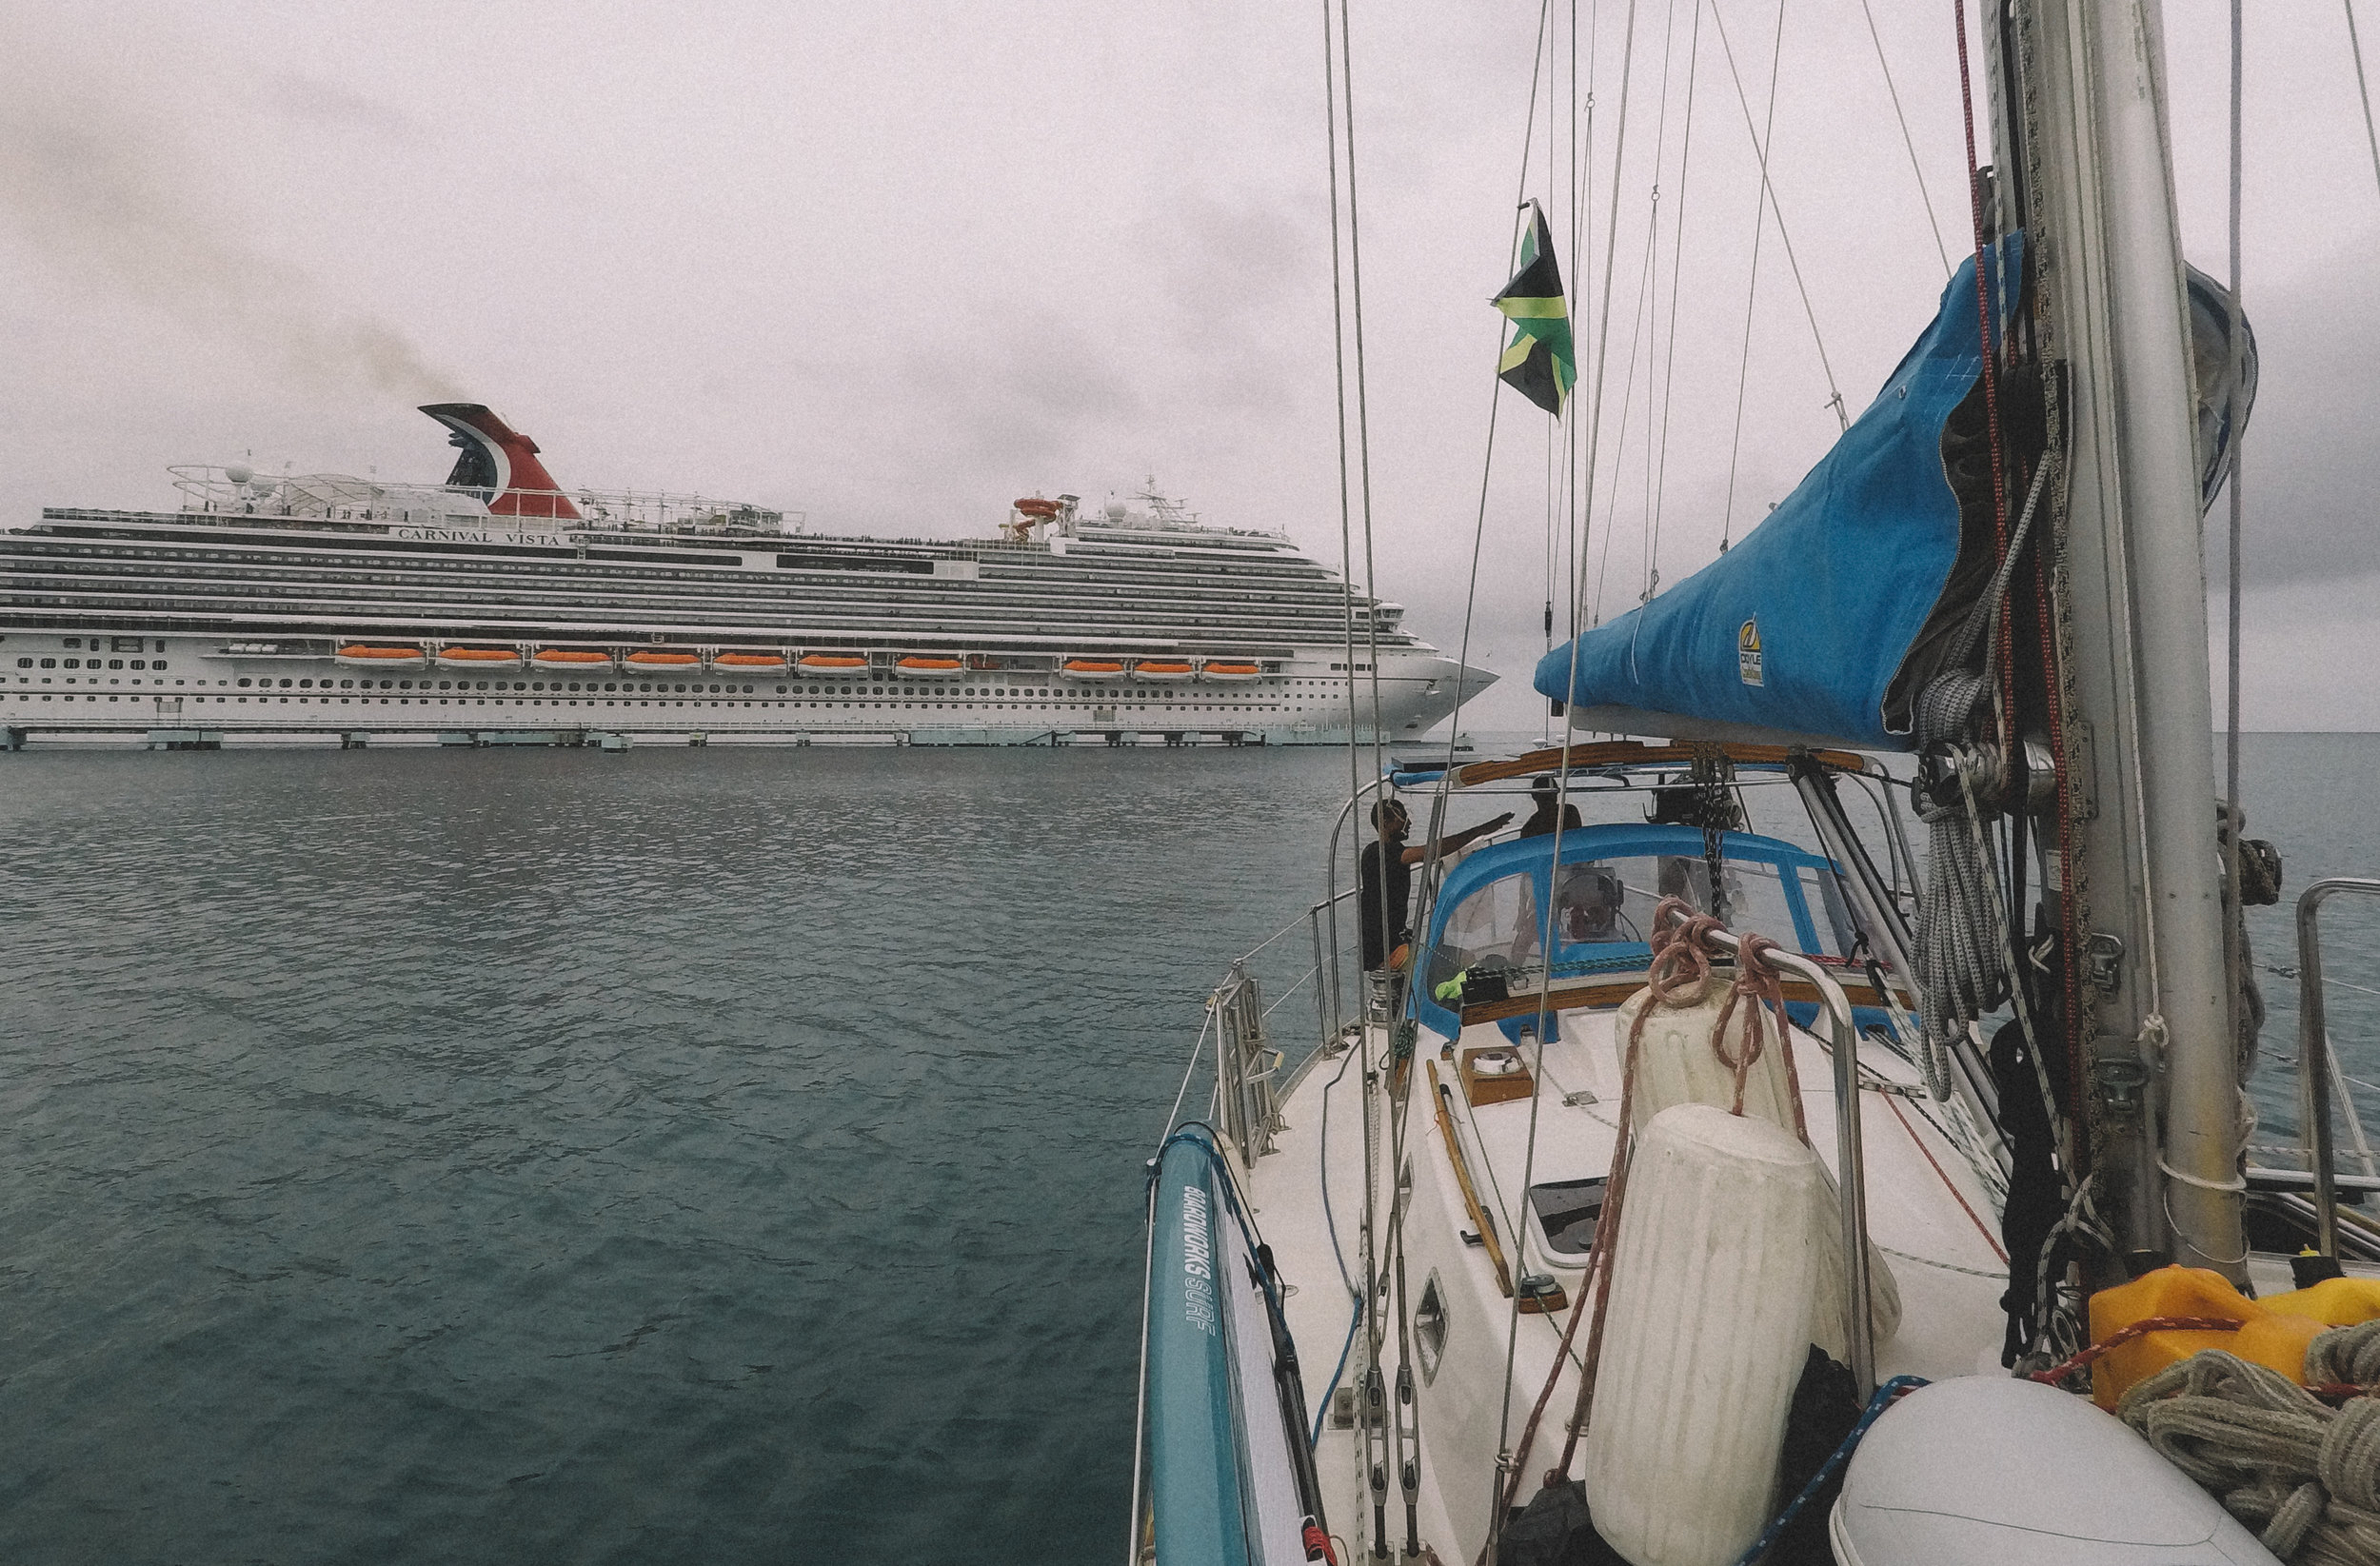 Anchored near one of the cruise ships in Montego Bay.